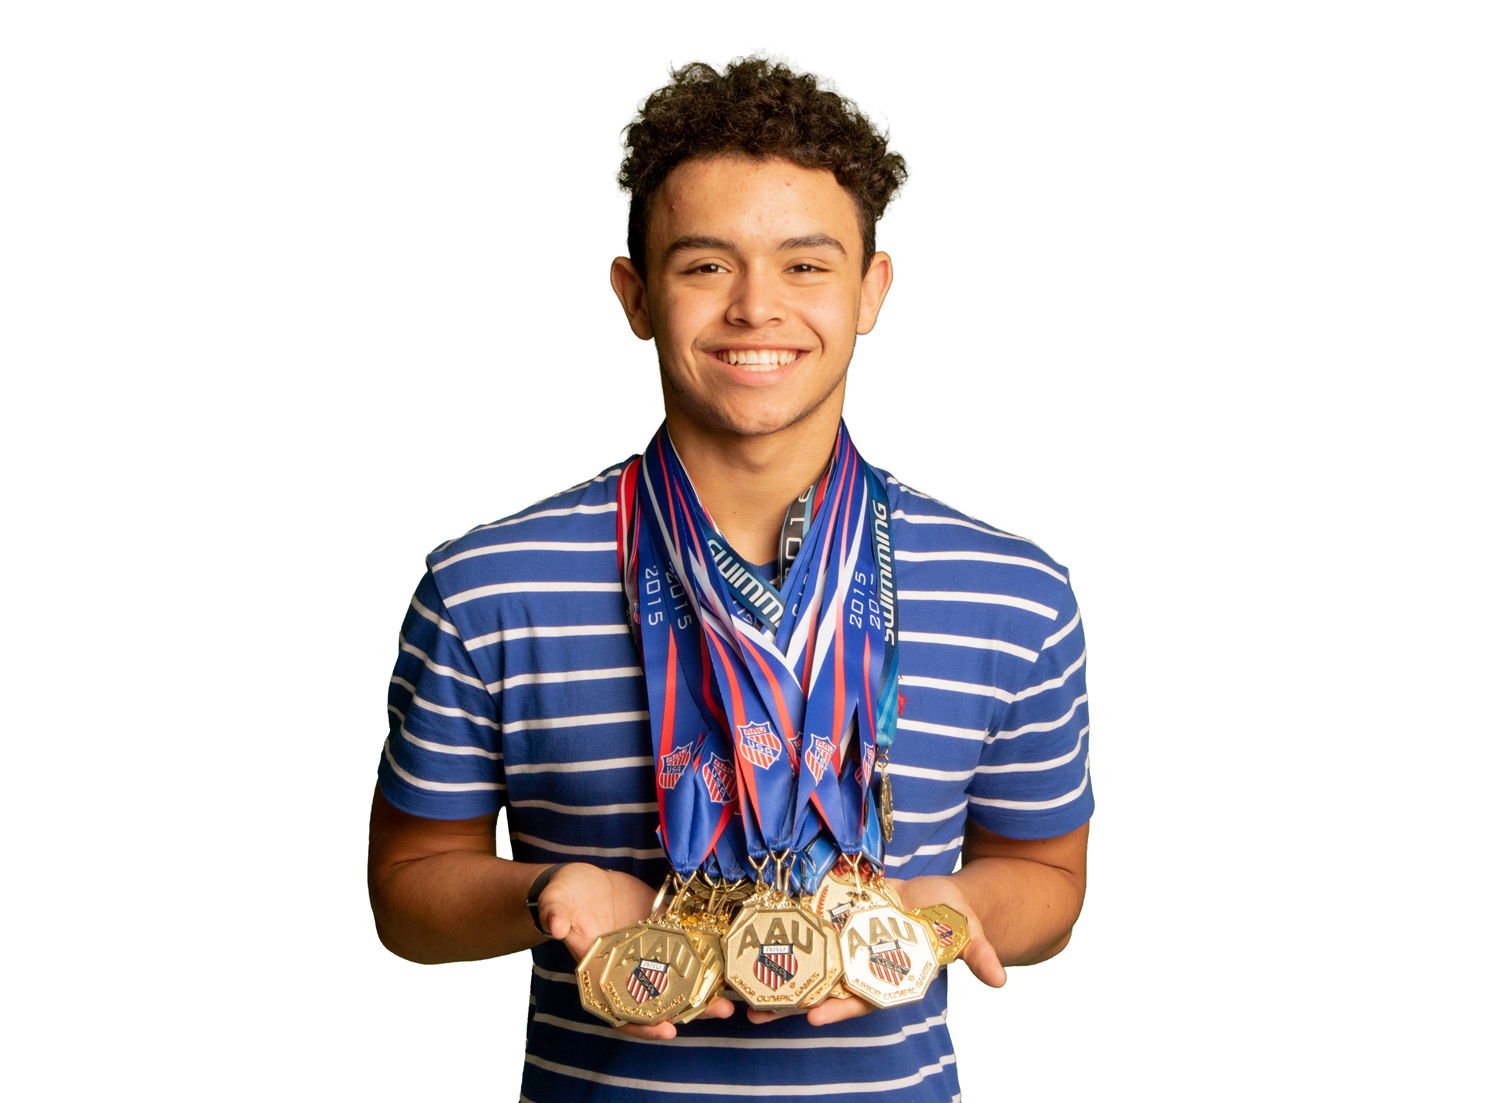 Sophomore Logan Diggs shows off his various first place medals from competing in the Junior Olympics. Diggs participated in the 2018 Junior Olympics and placed in four events.